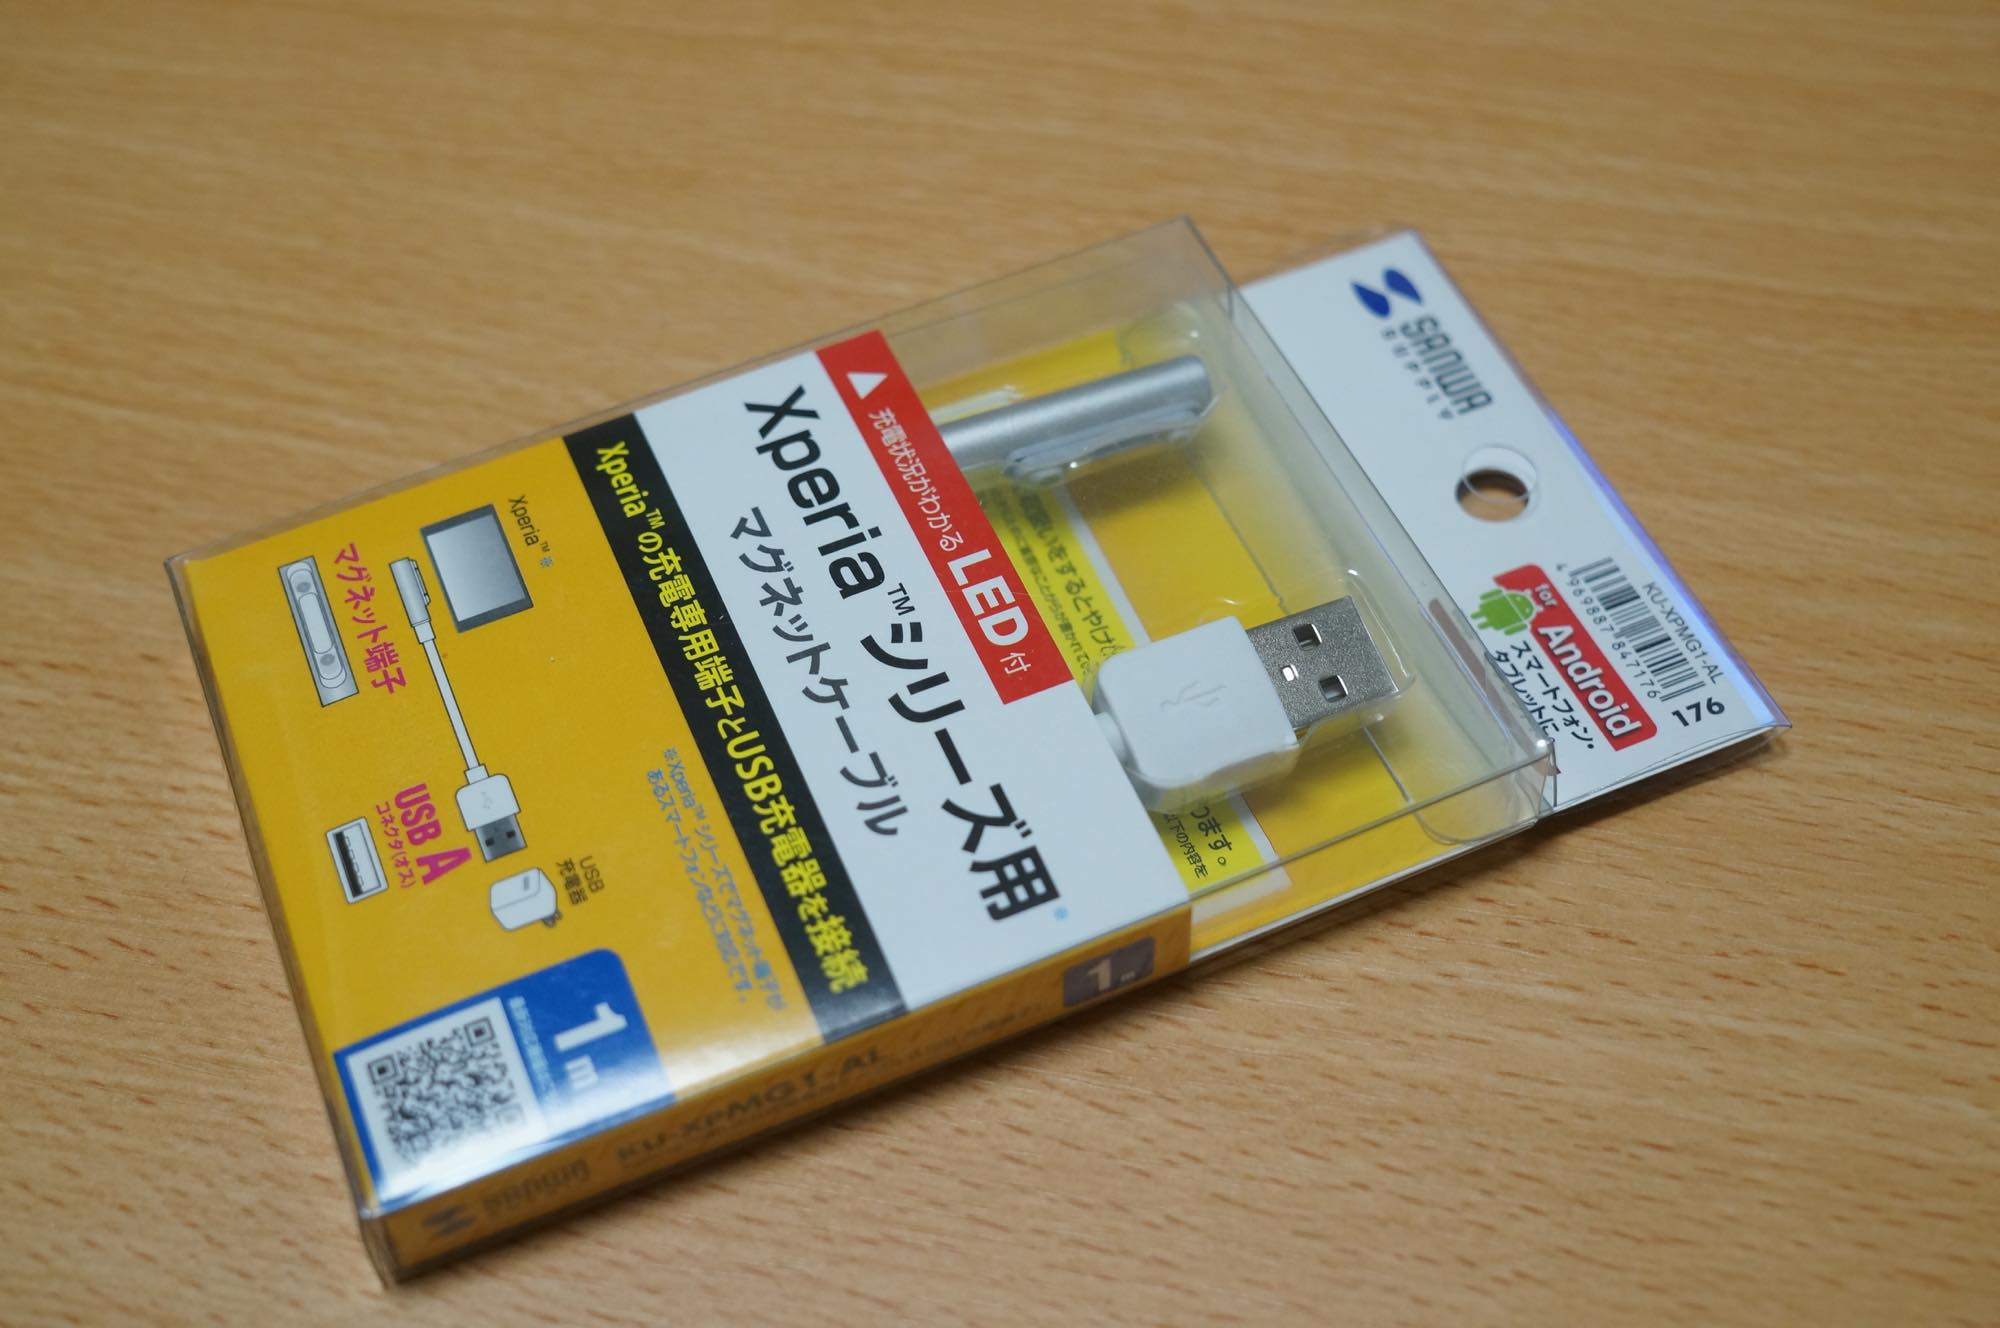 xperia-cable1